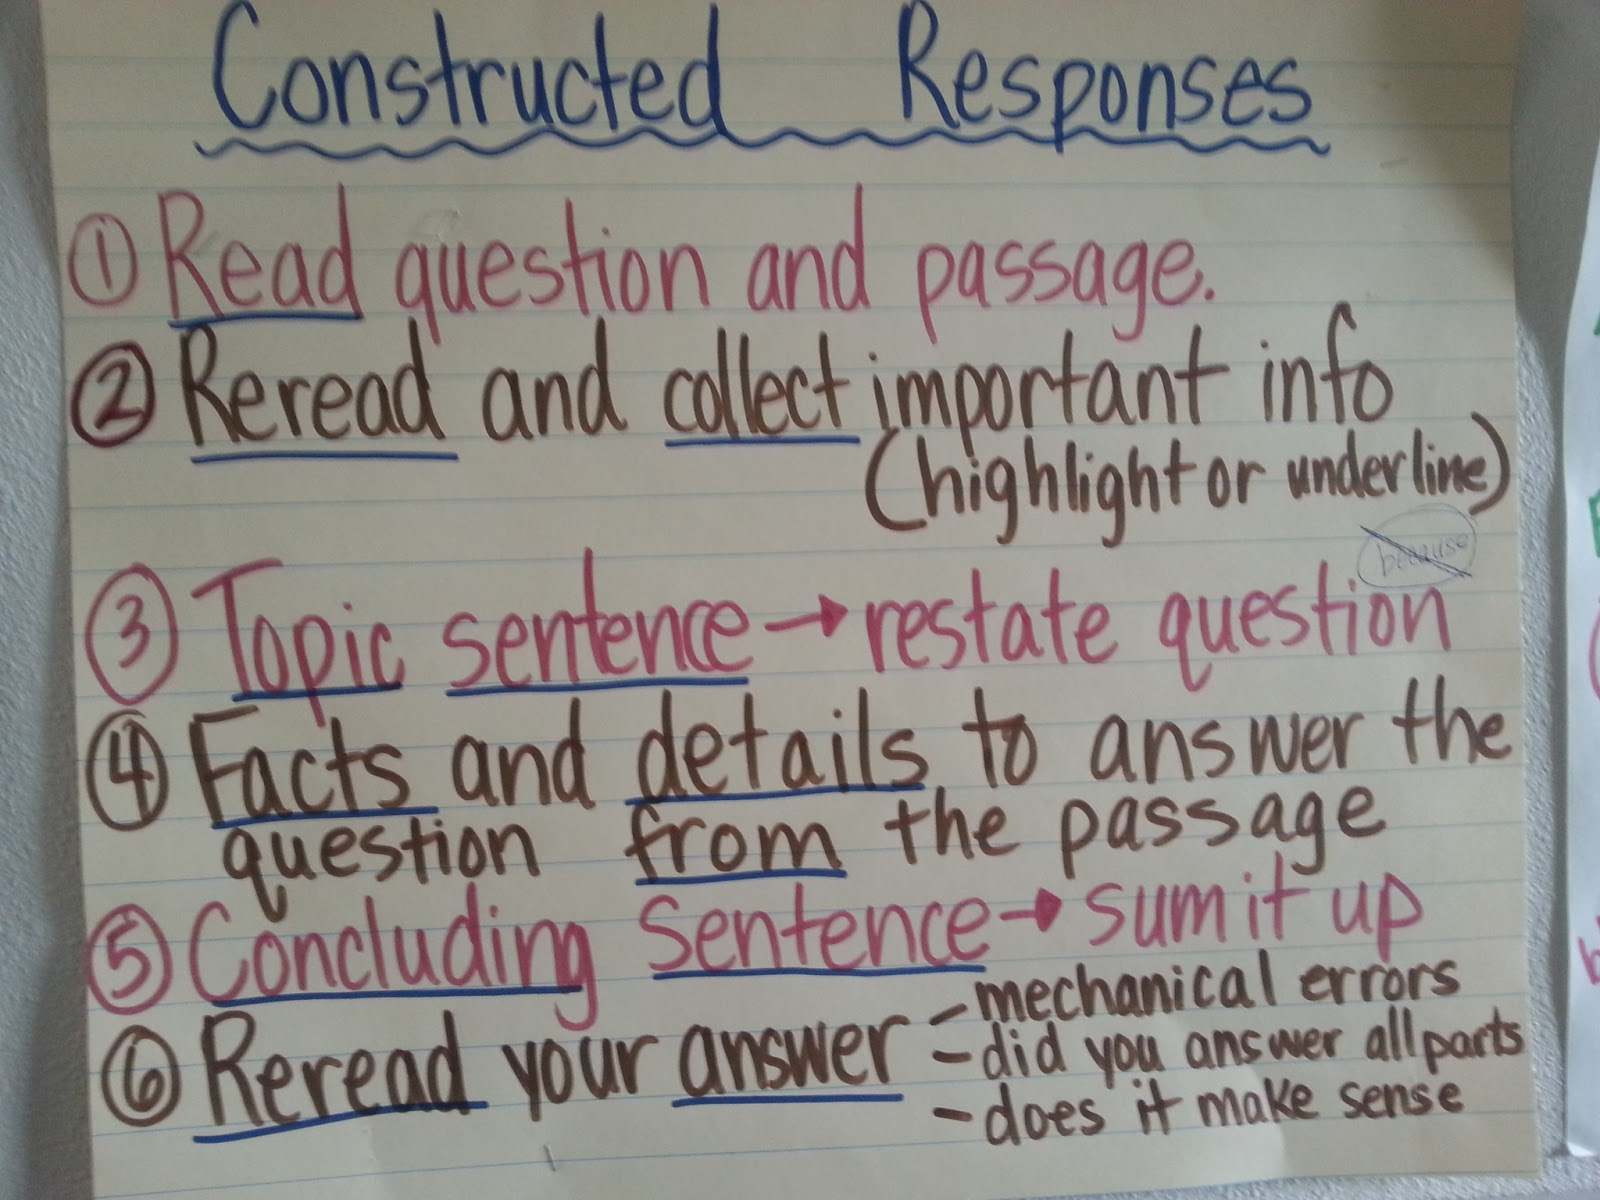 How to write a constructed response in math